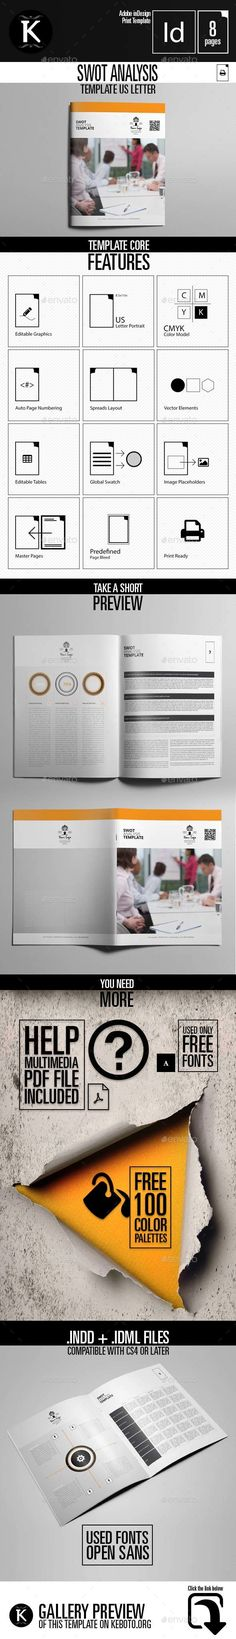 Competitive Analysis Template Competitive Analysis Pinterest - product swot analysis template